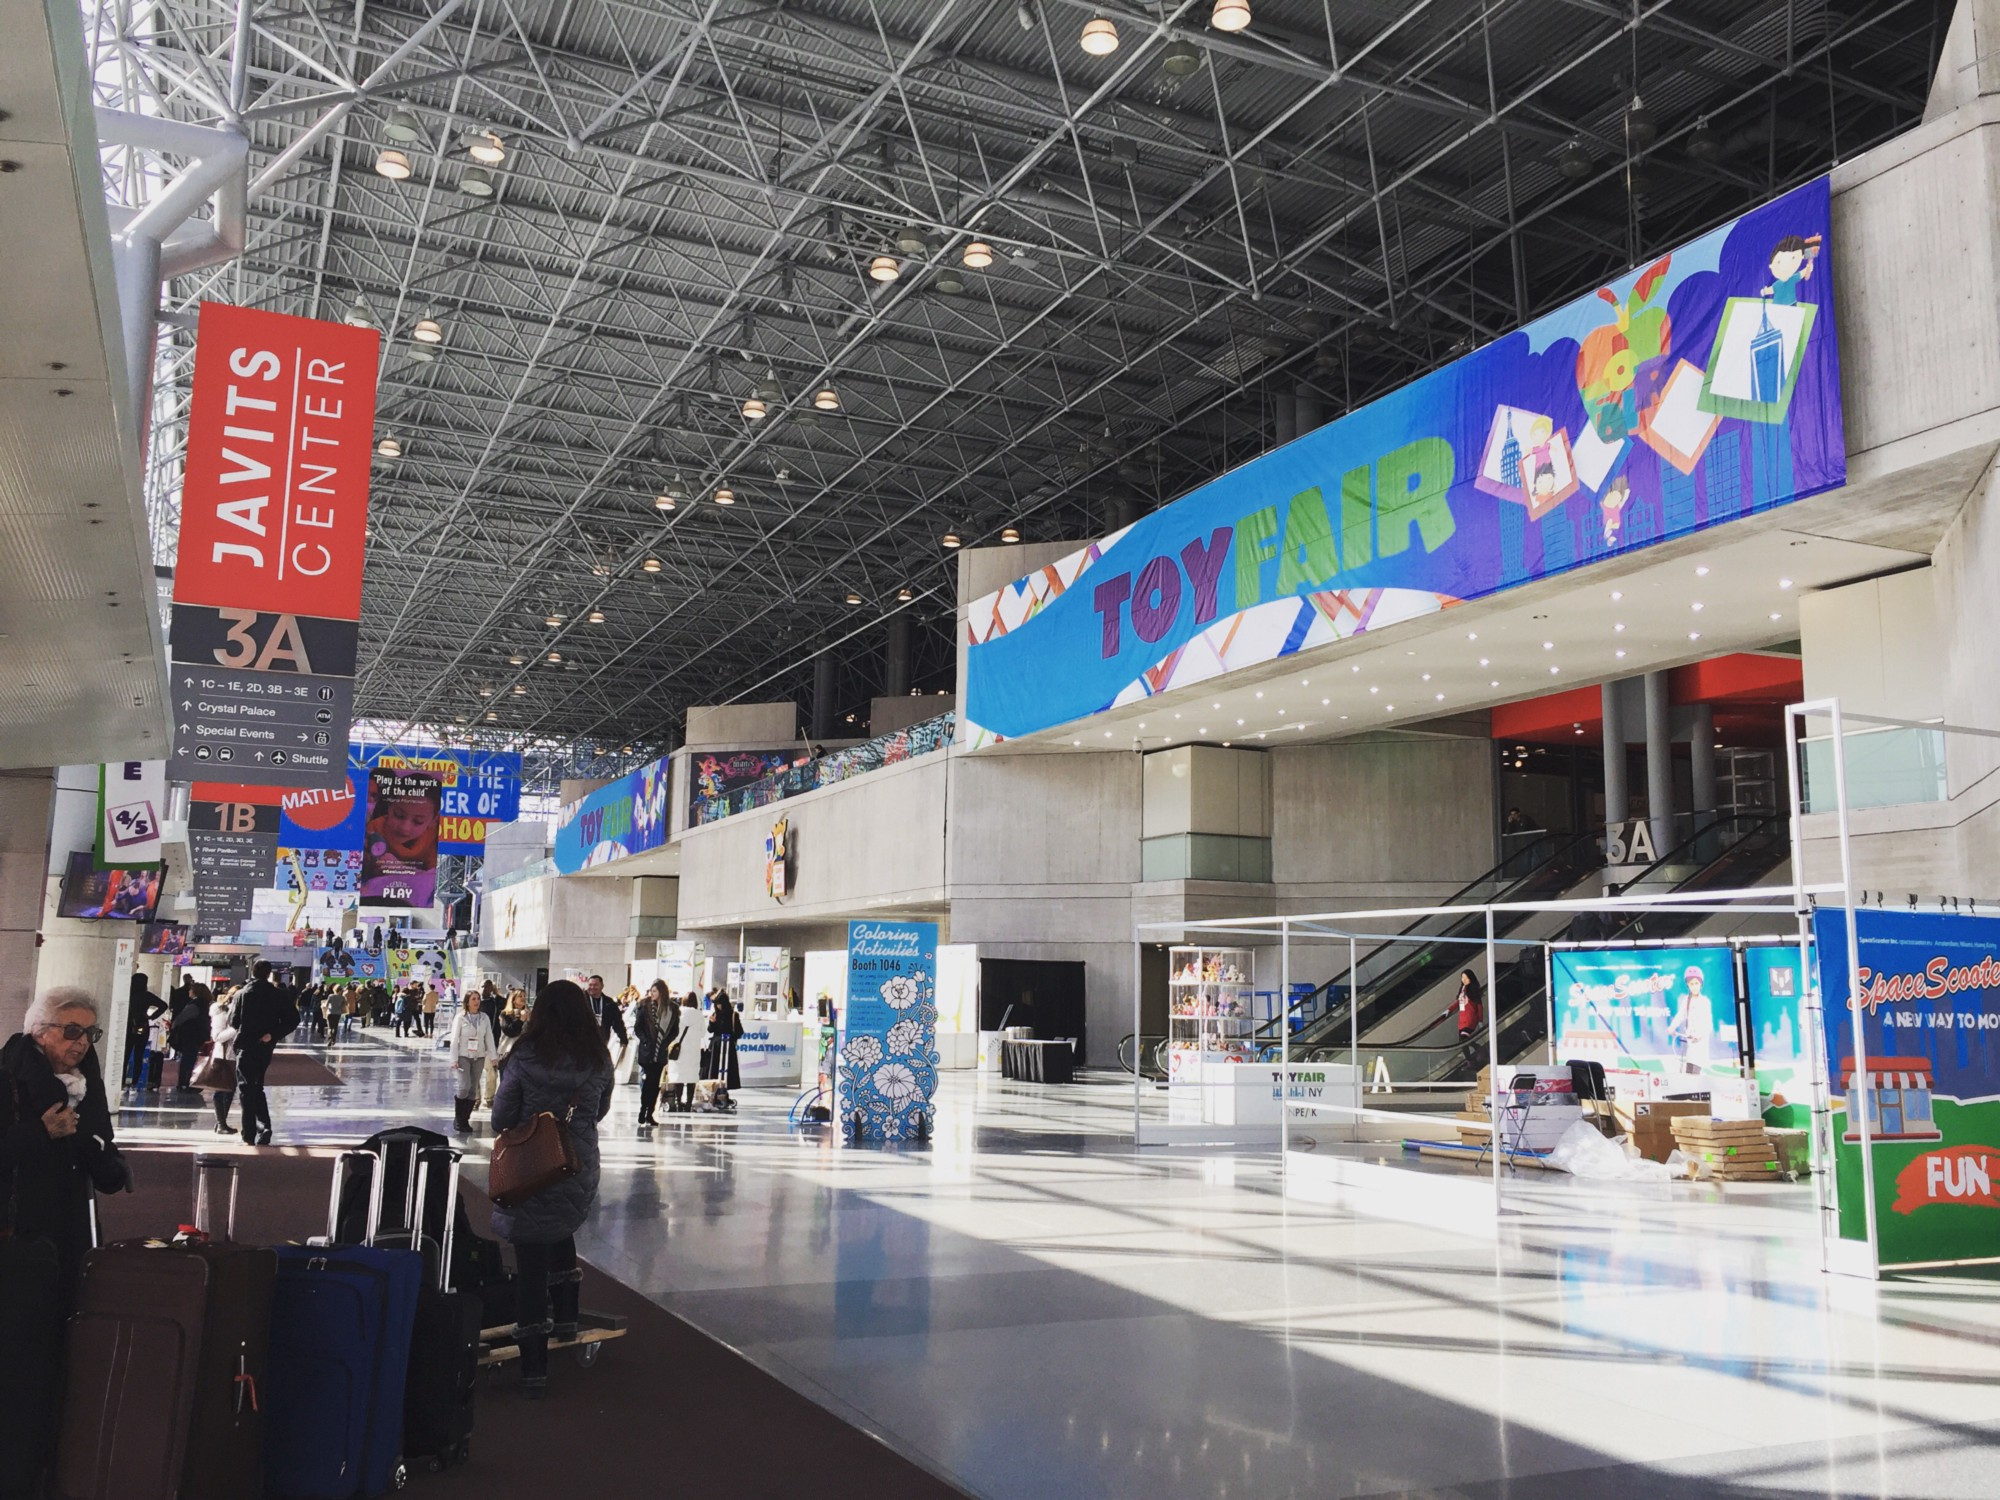 One of the main entries to the main floor at the Javits in New York, the calm before the crowd on an early Saturday morning.